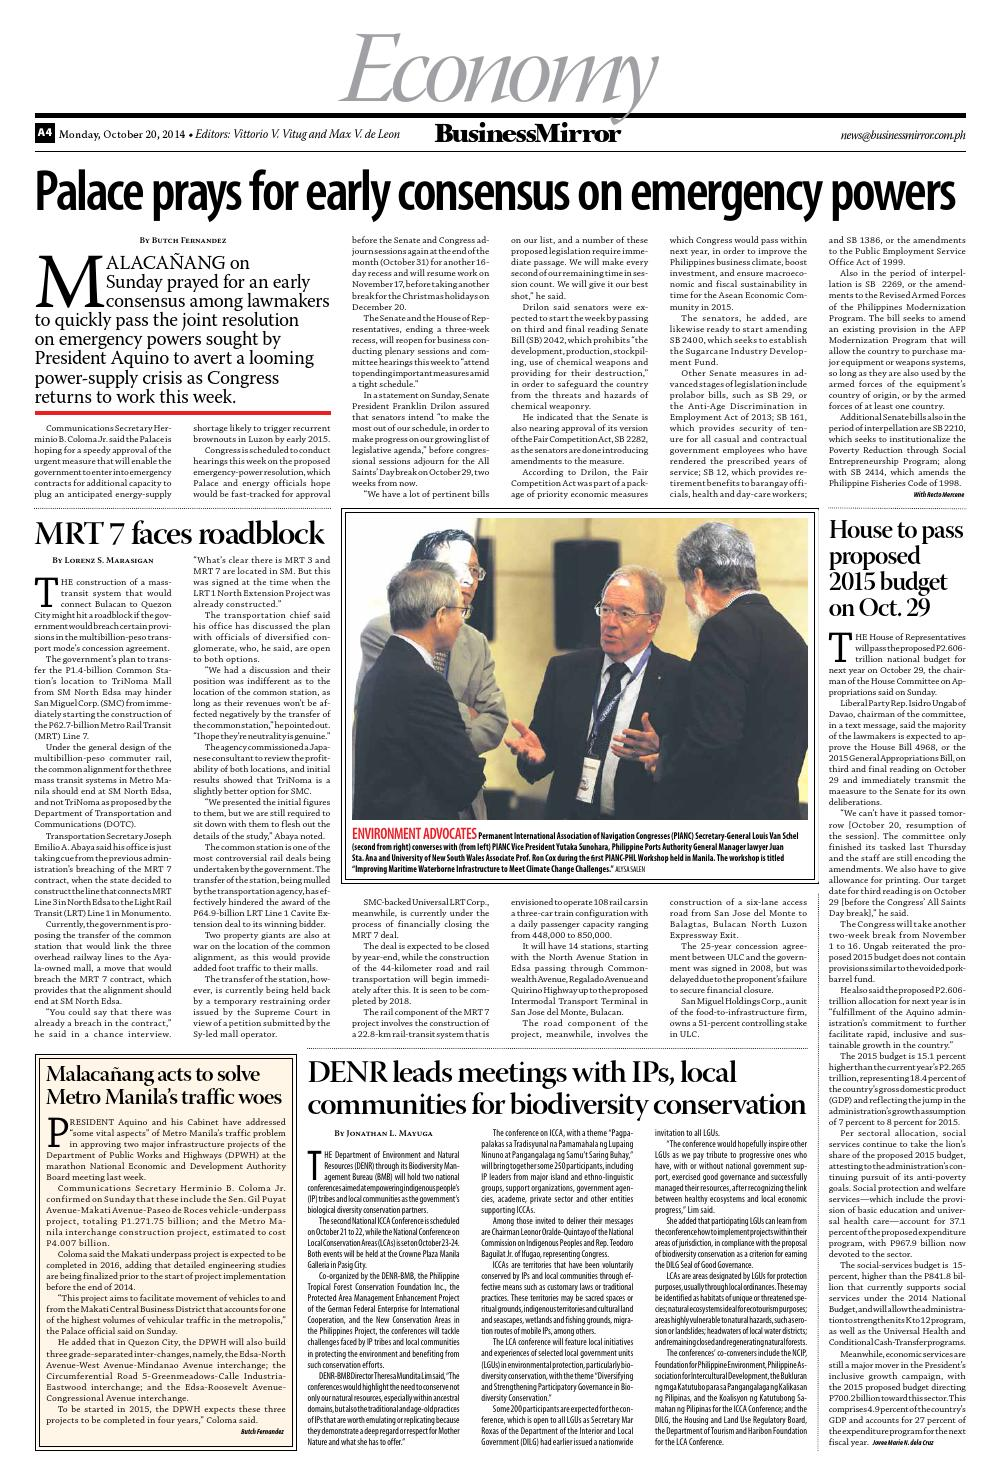 Businessmirror 10 20 2014 by BusinessMirror - issuu